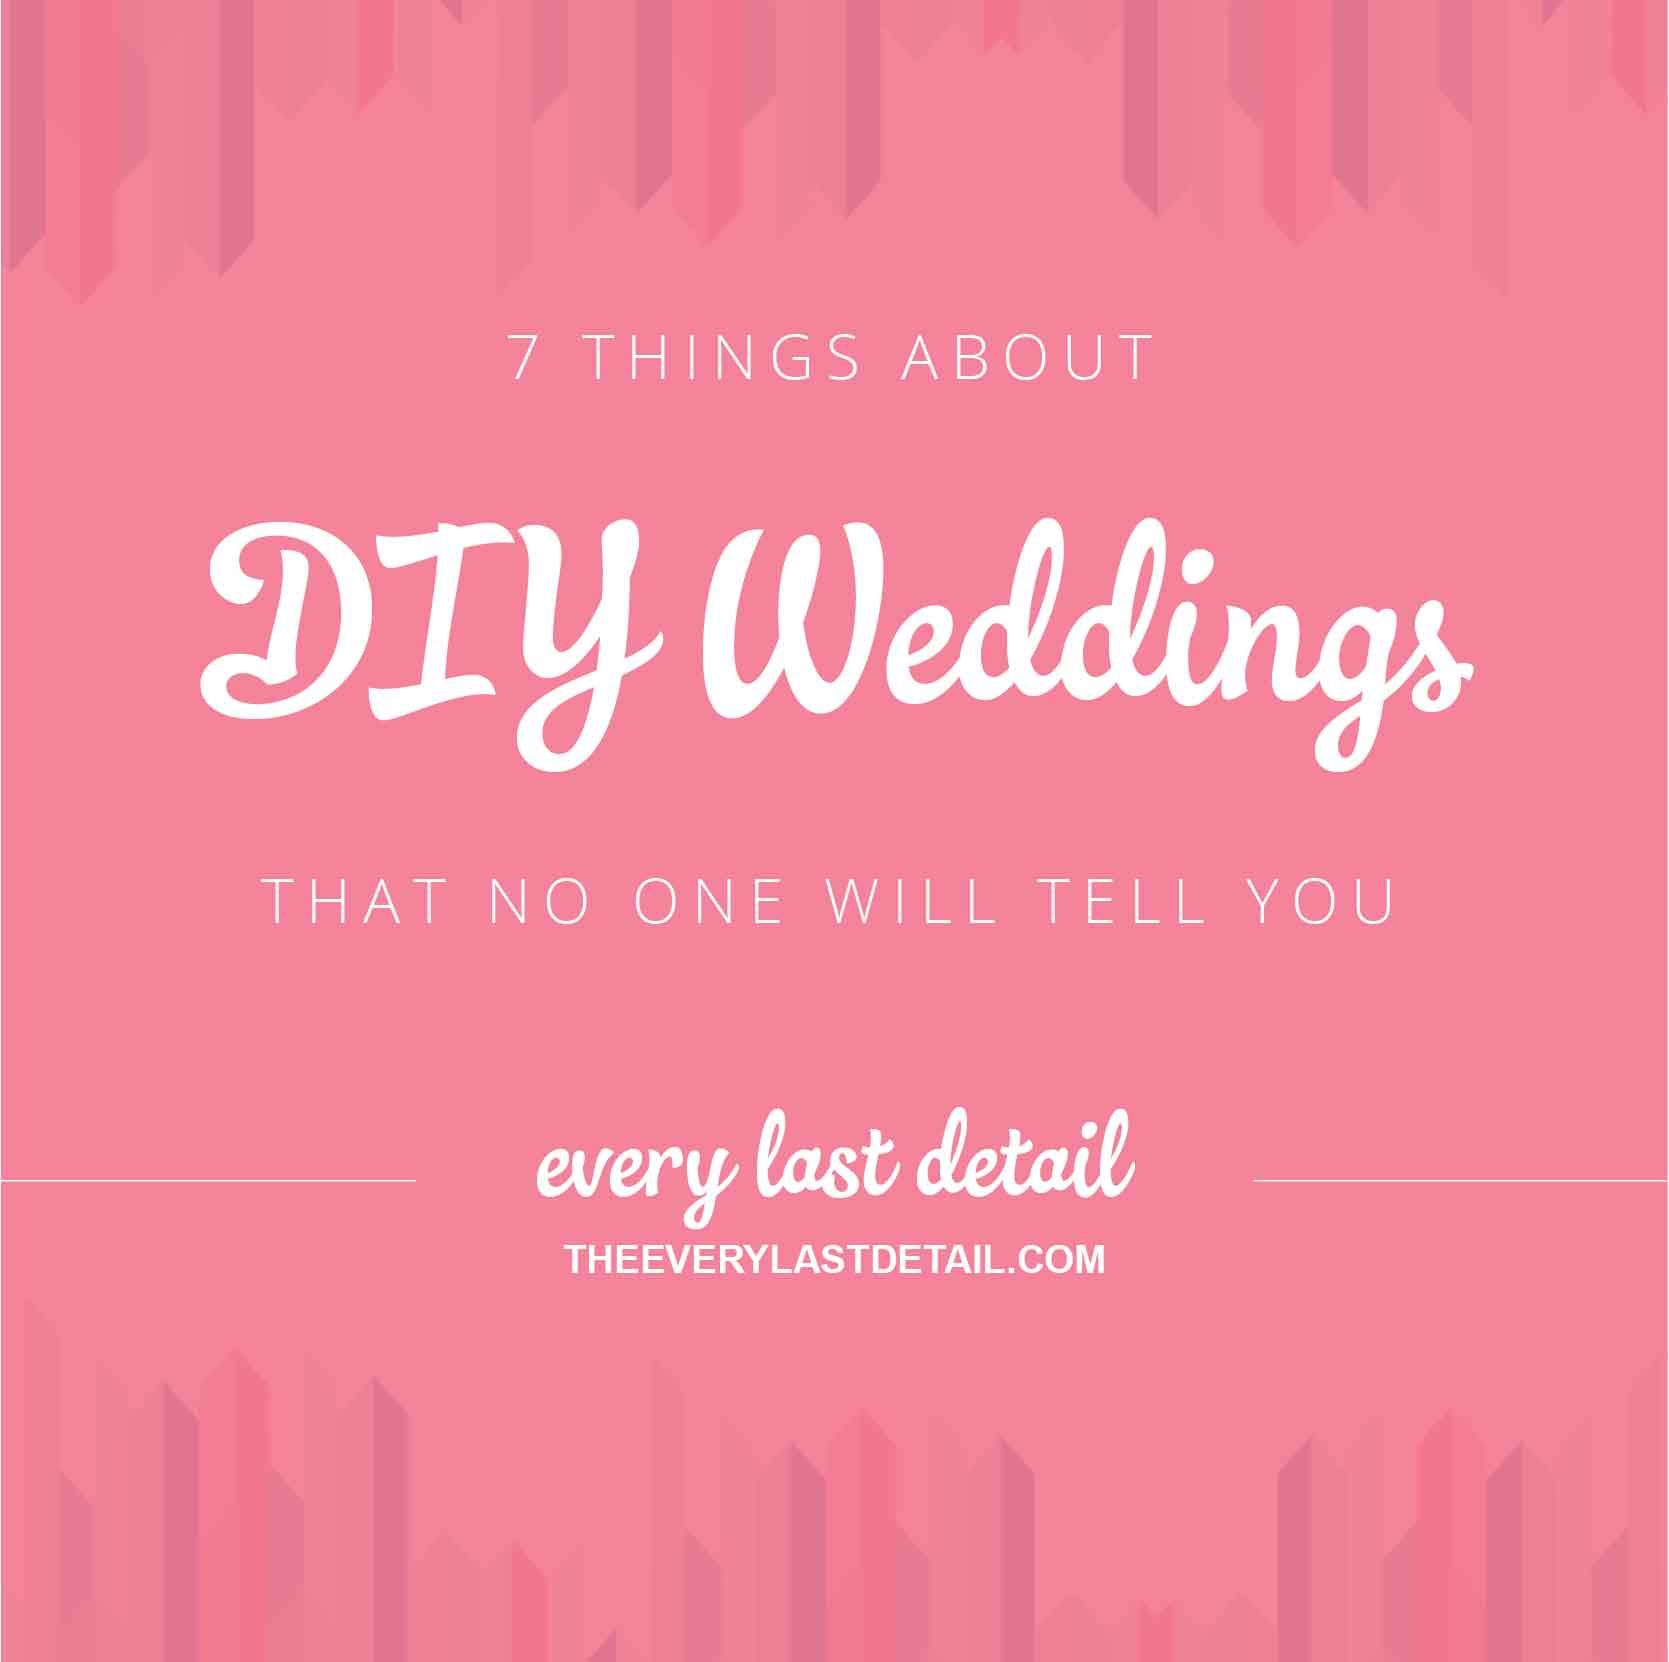 7 things about DIY Weddings that no one will tell you via TheELD.com